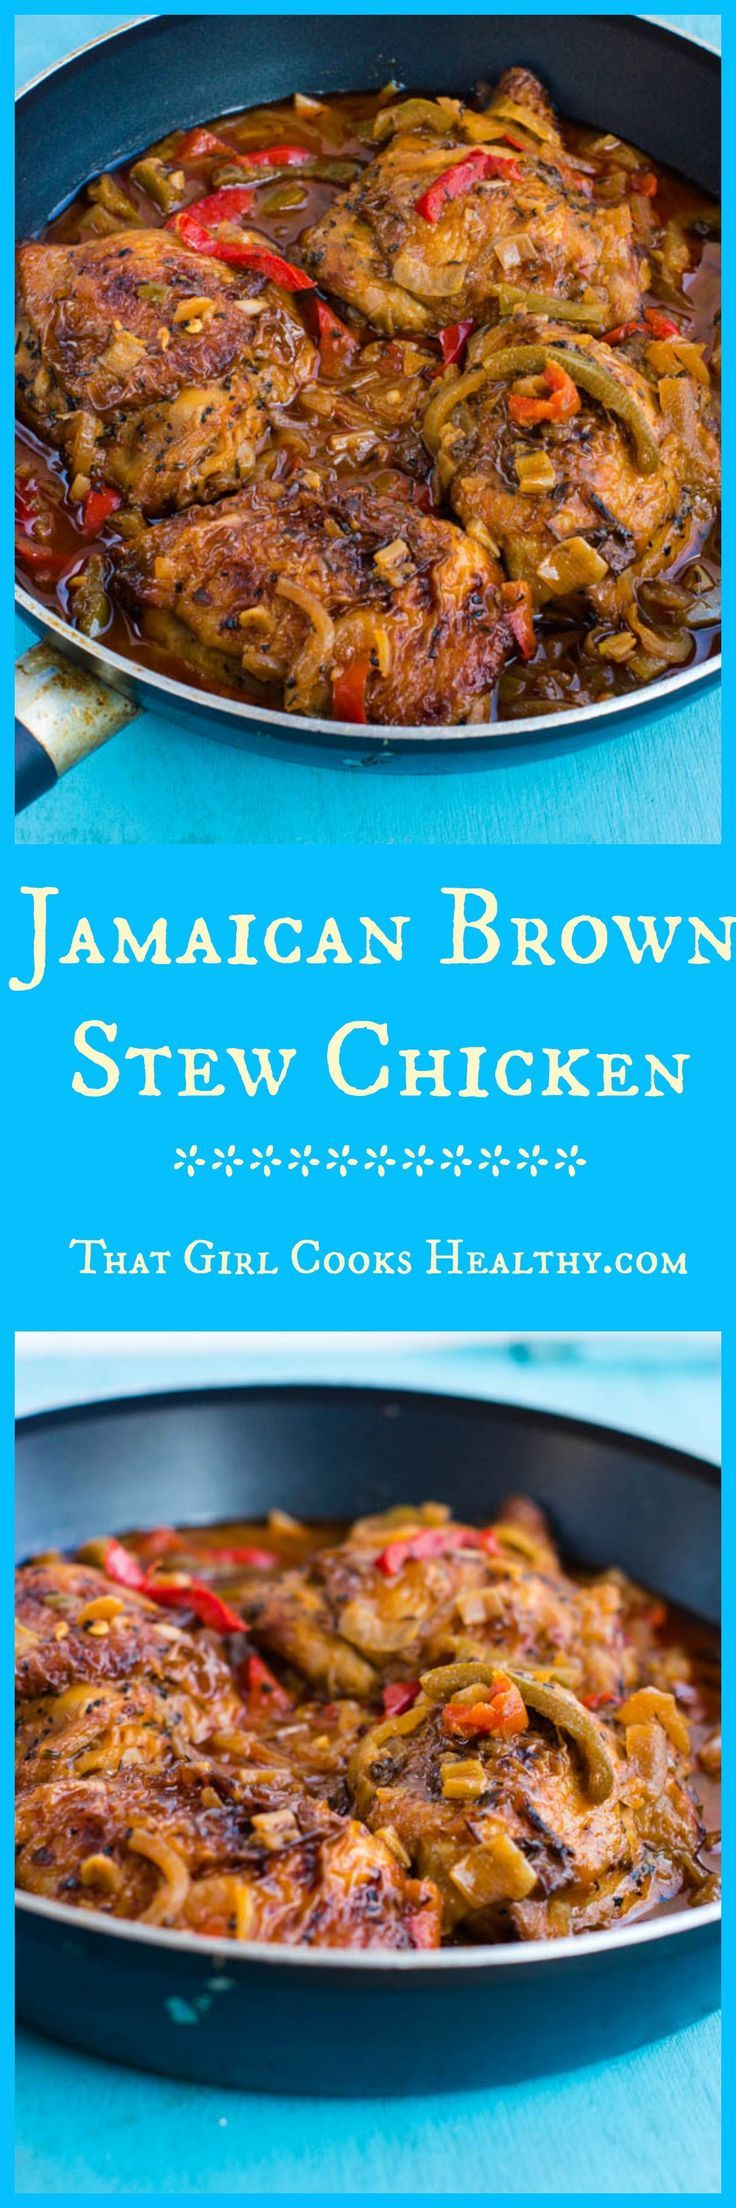 Jamaican brown stew chicken - paleo and gluten free